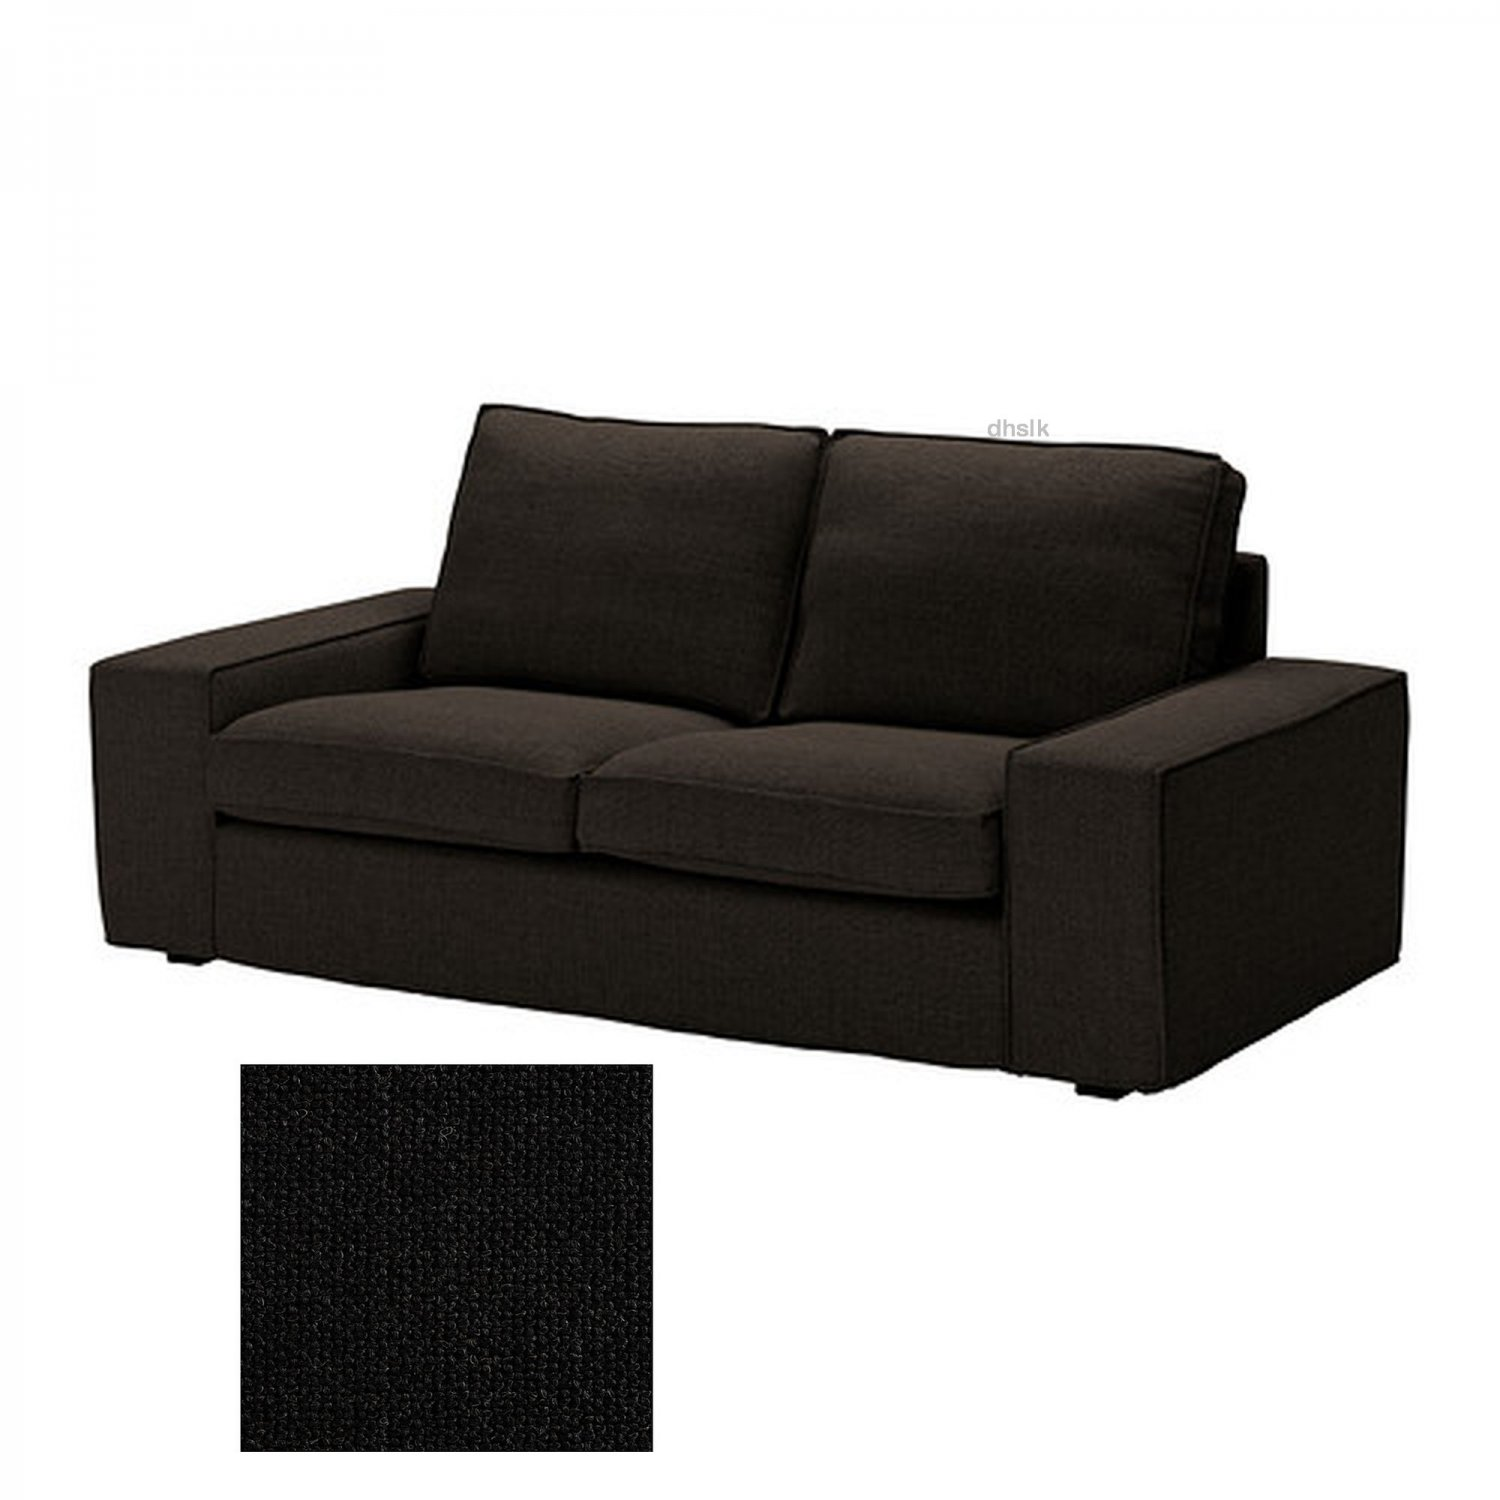 Ikea Kivik 2 Seat Loveseat Sofa Slipcover Cover Teno Black Ten